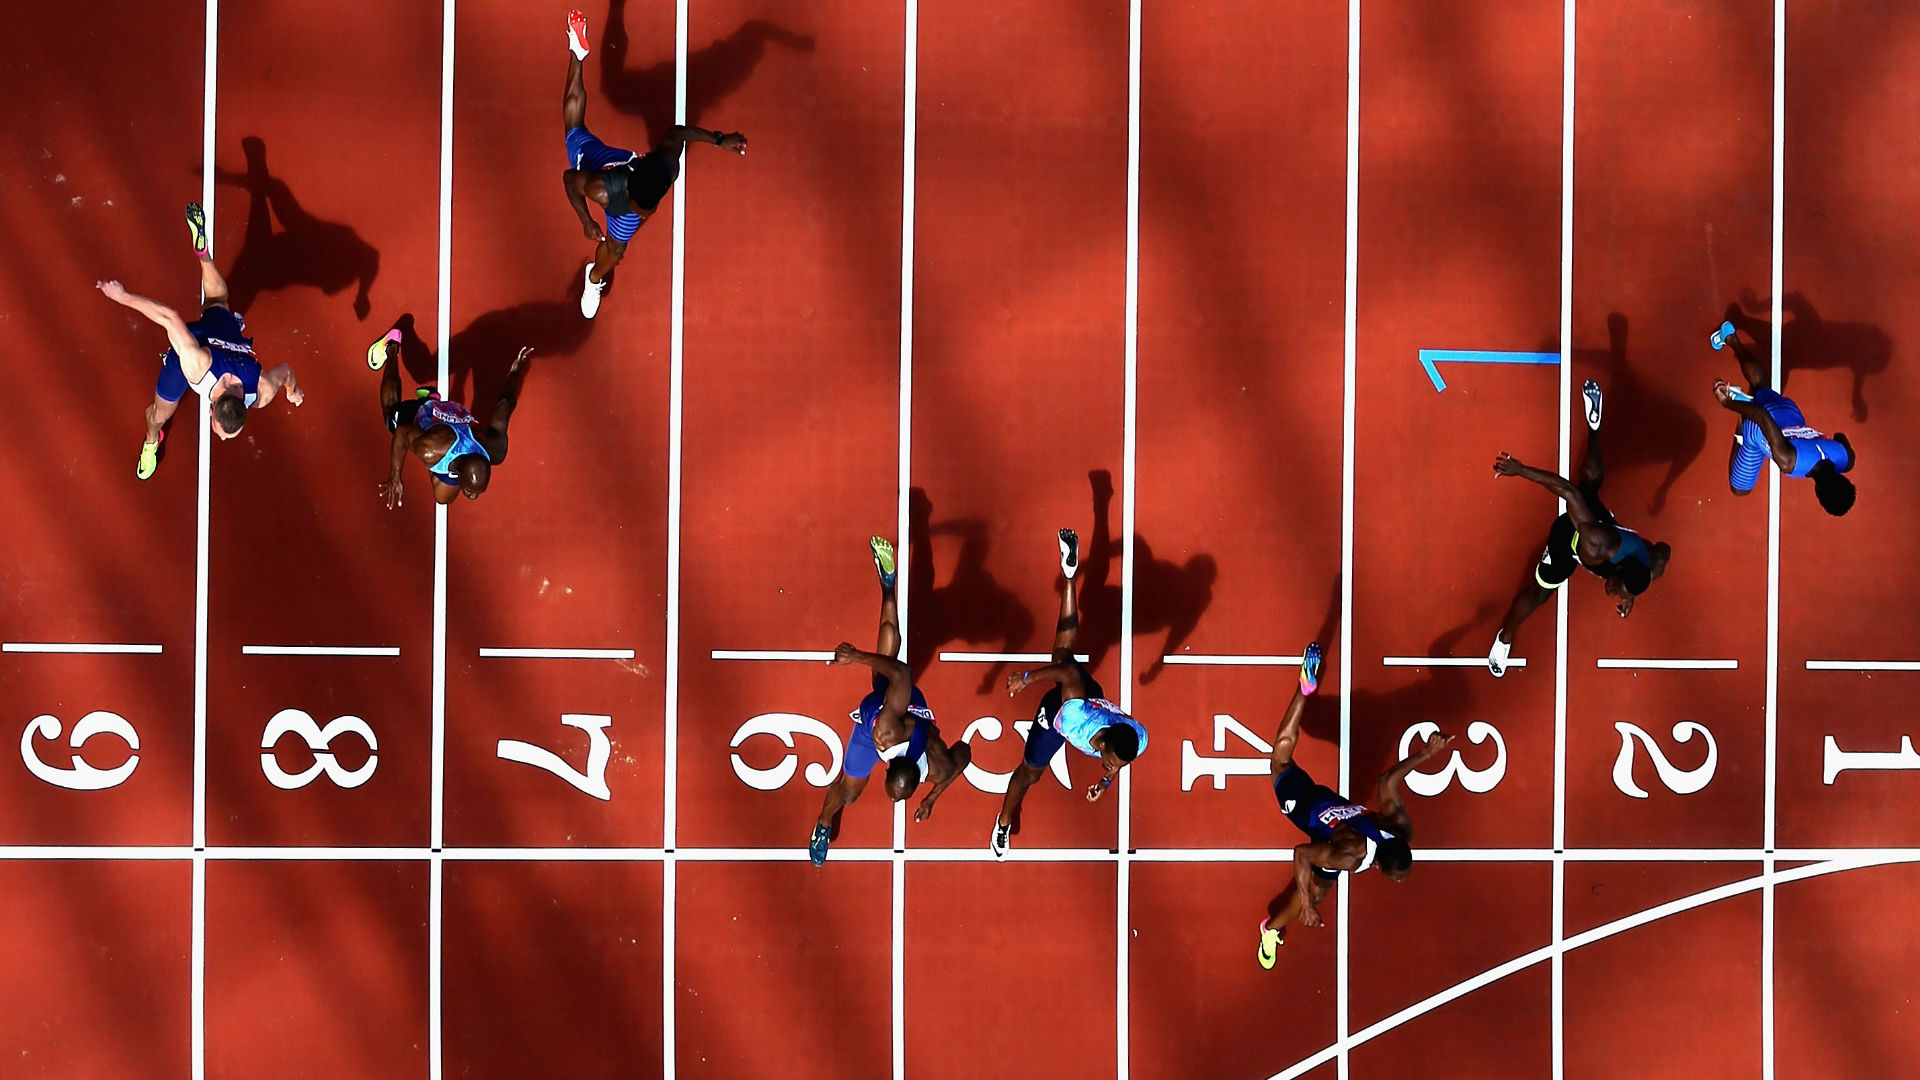 The Atheltics World Cup comes to London Stadium, 14-15 Jul. Image courtesy of Getty Images / British Athletics